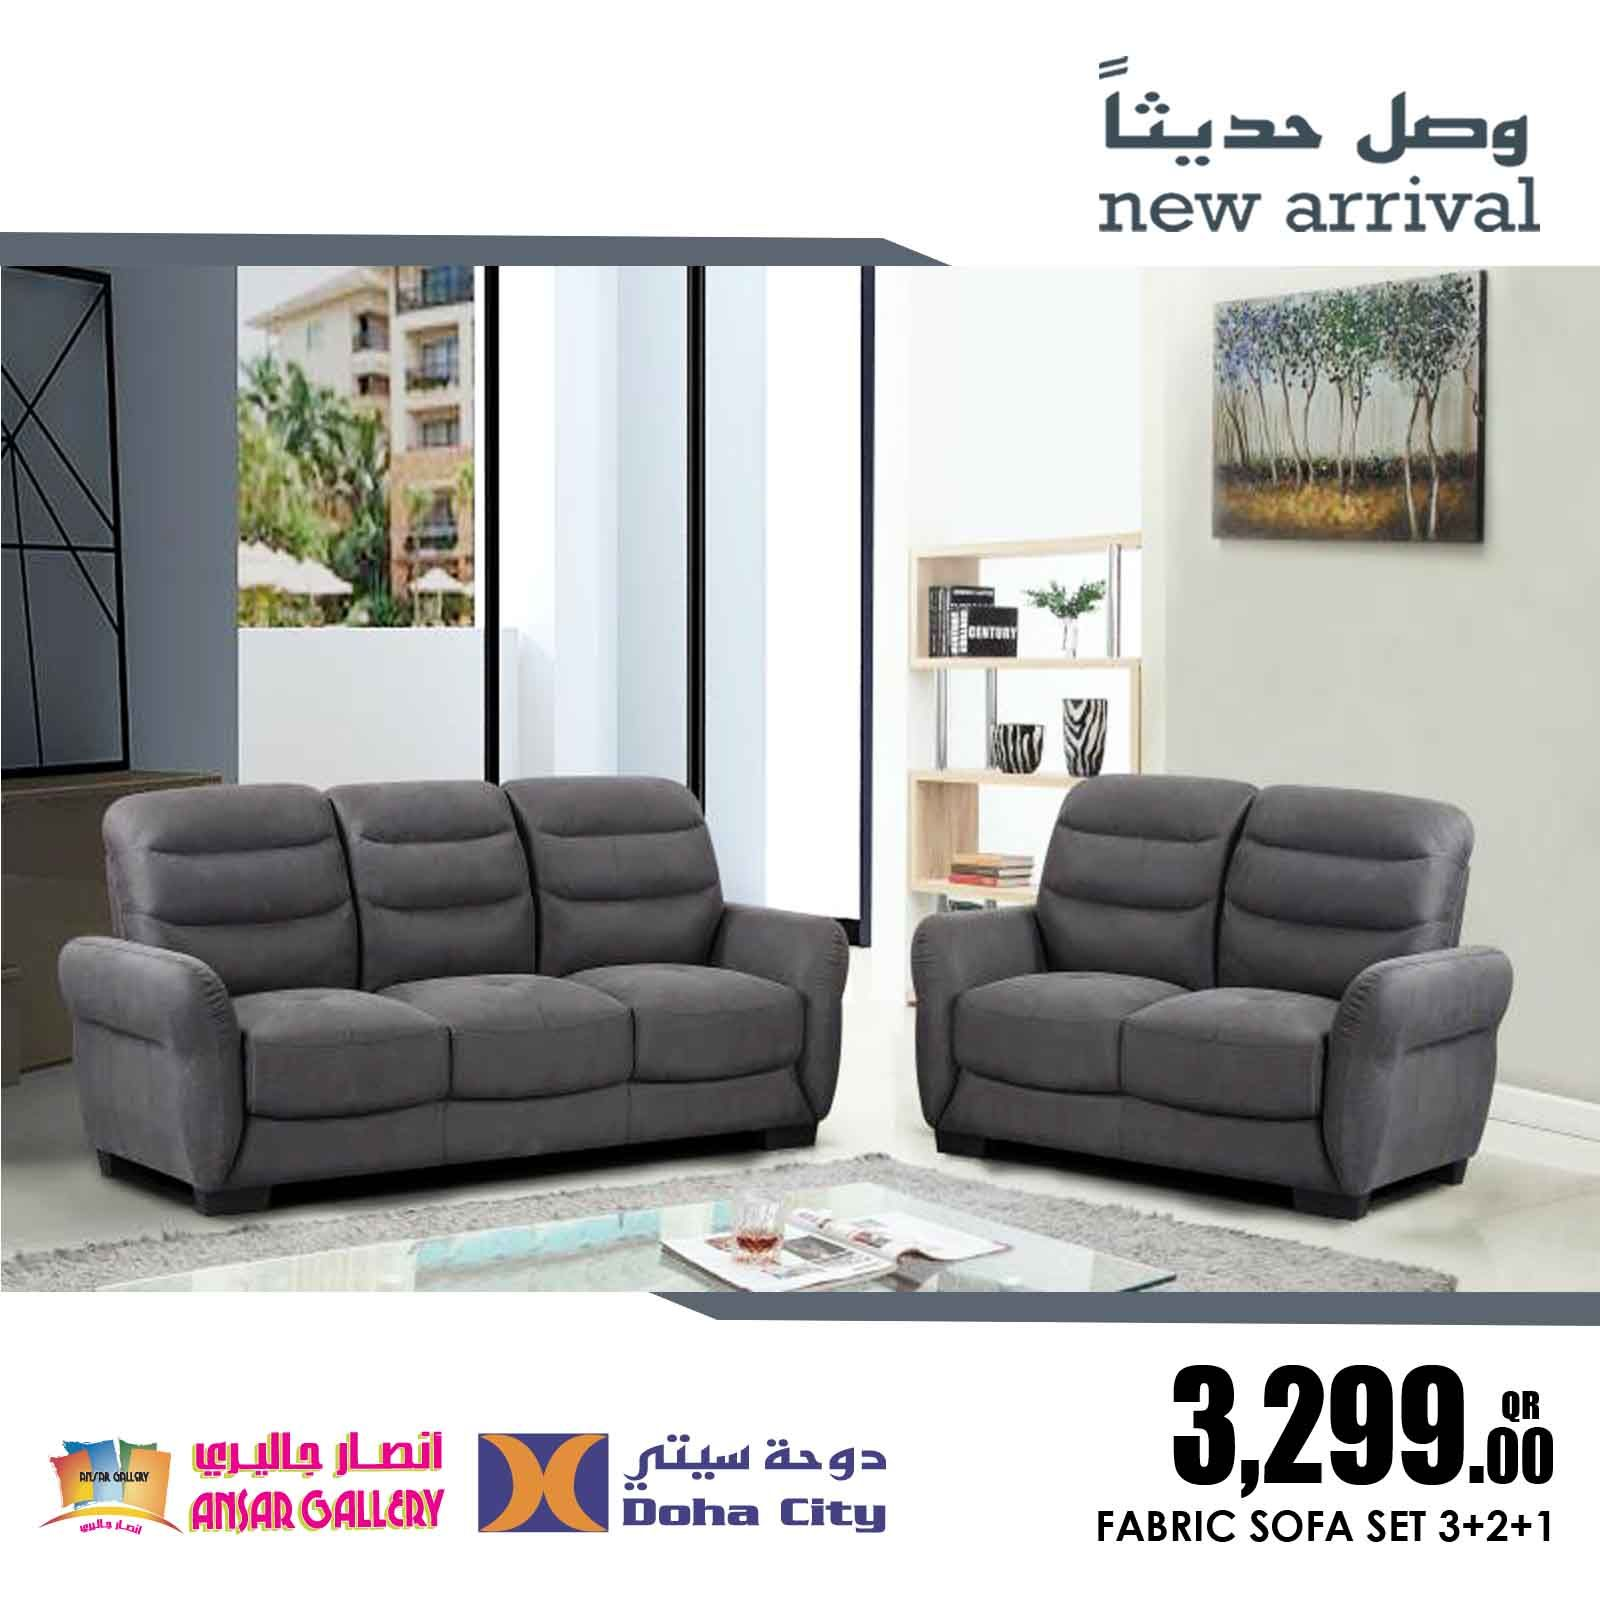 Pin By Ansar Gallery Qatar On Furniture Sofa Set Furniture Fabric Sofa